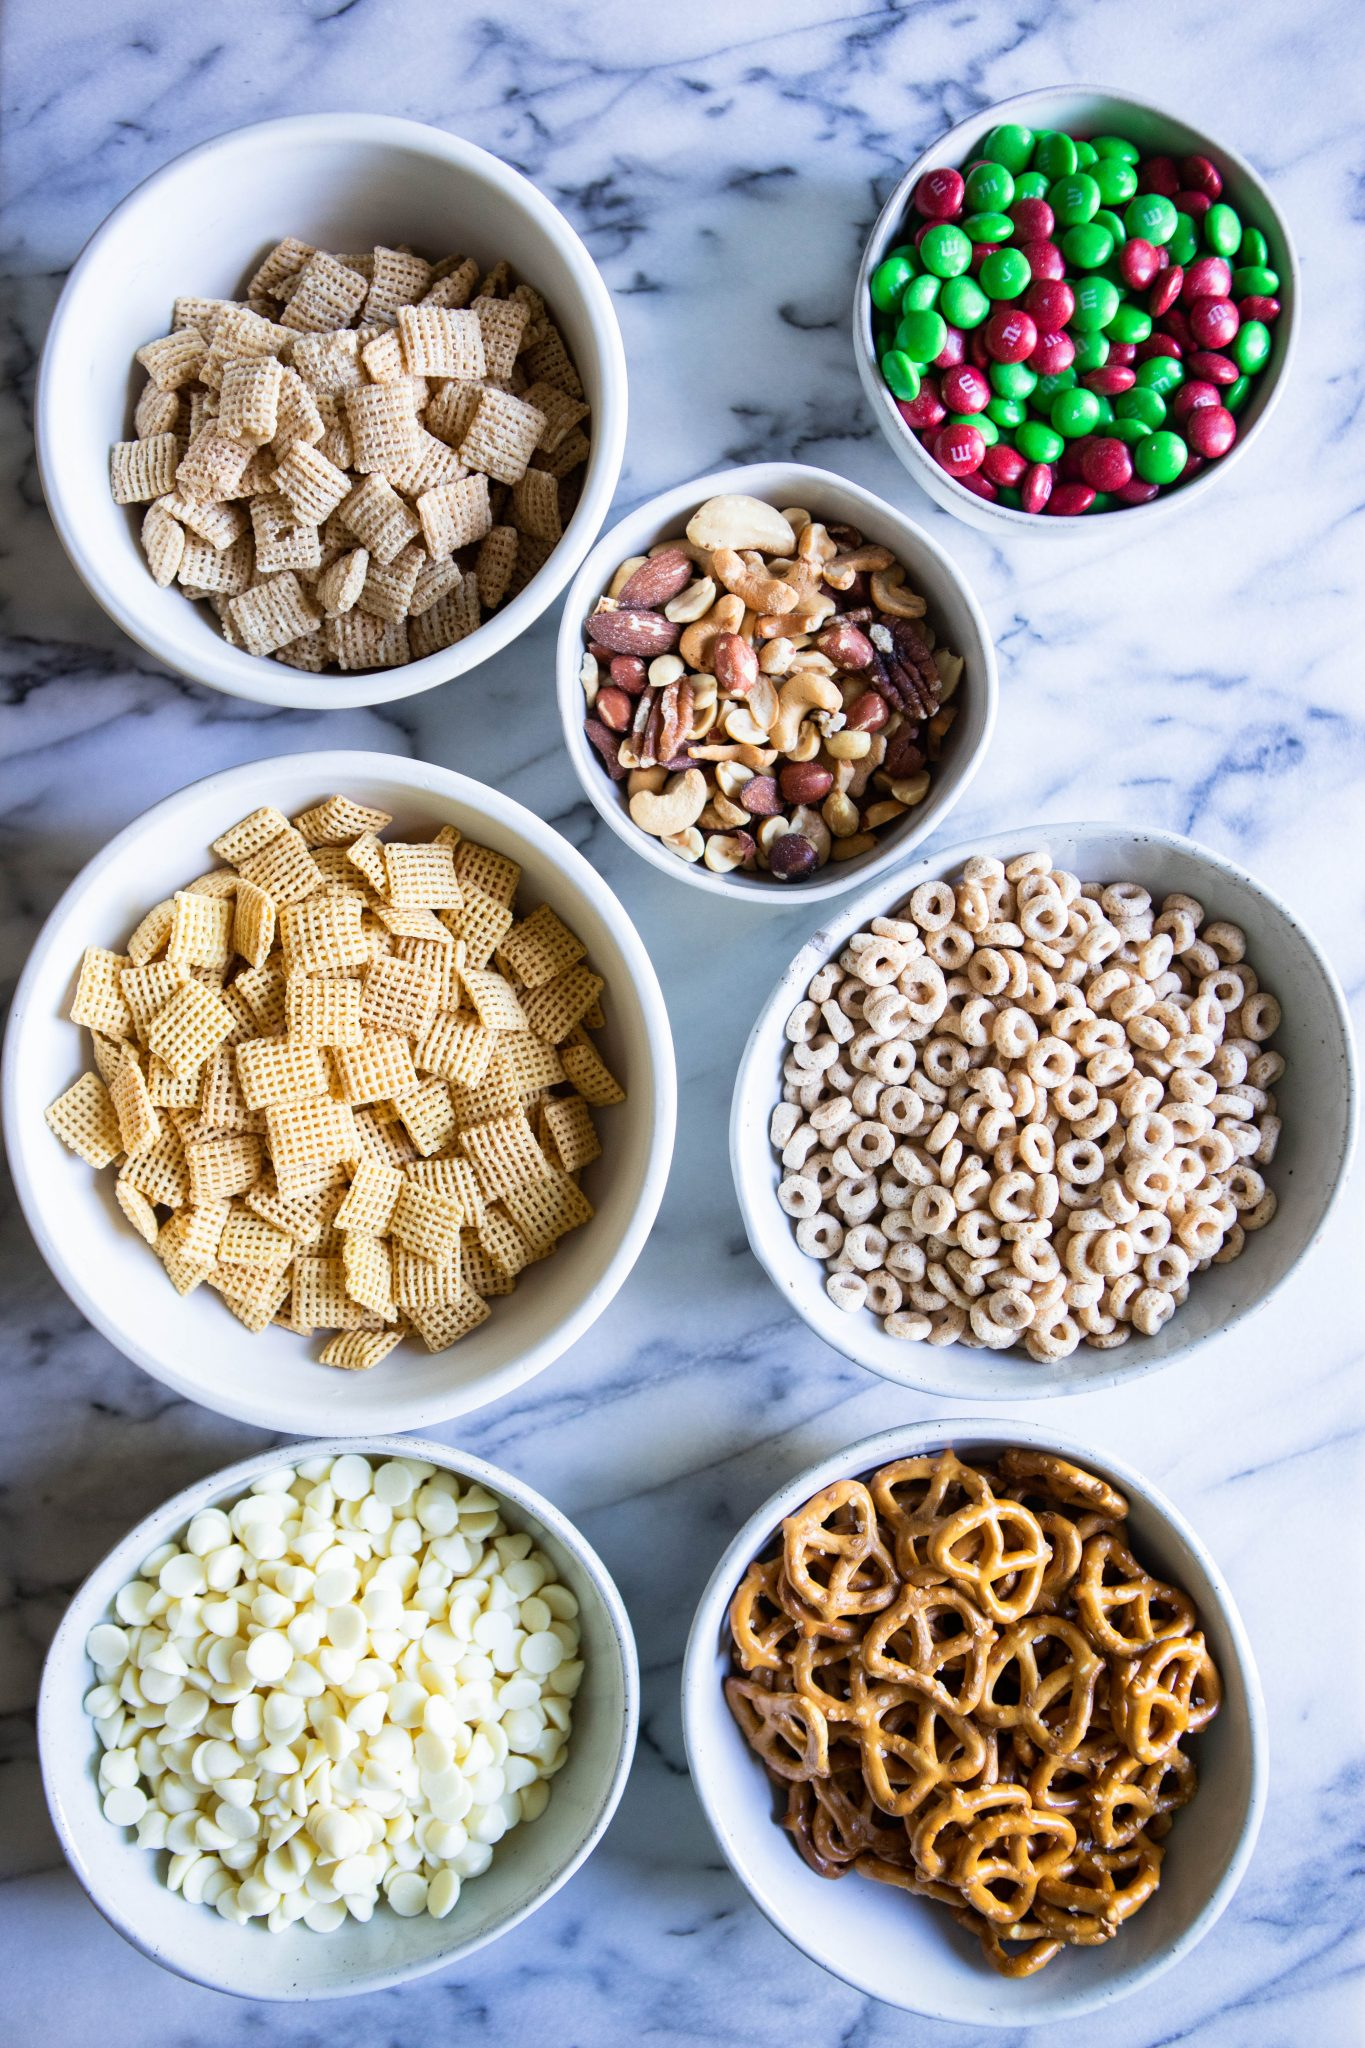 white chocolate Chex mix ingredients in white bowls against a marble backdrop